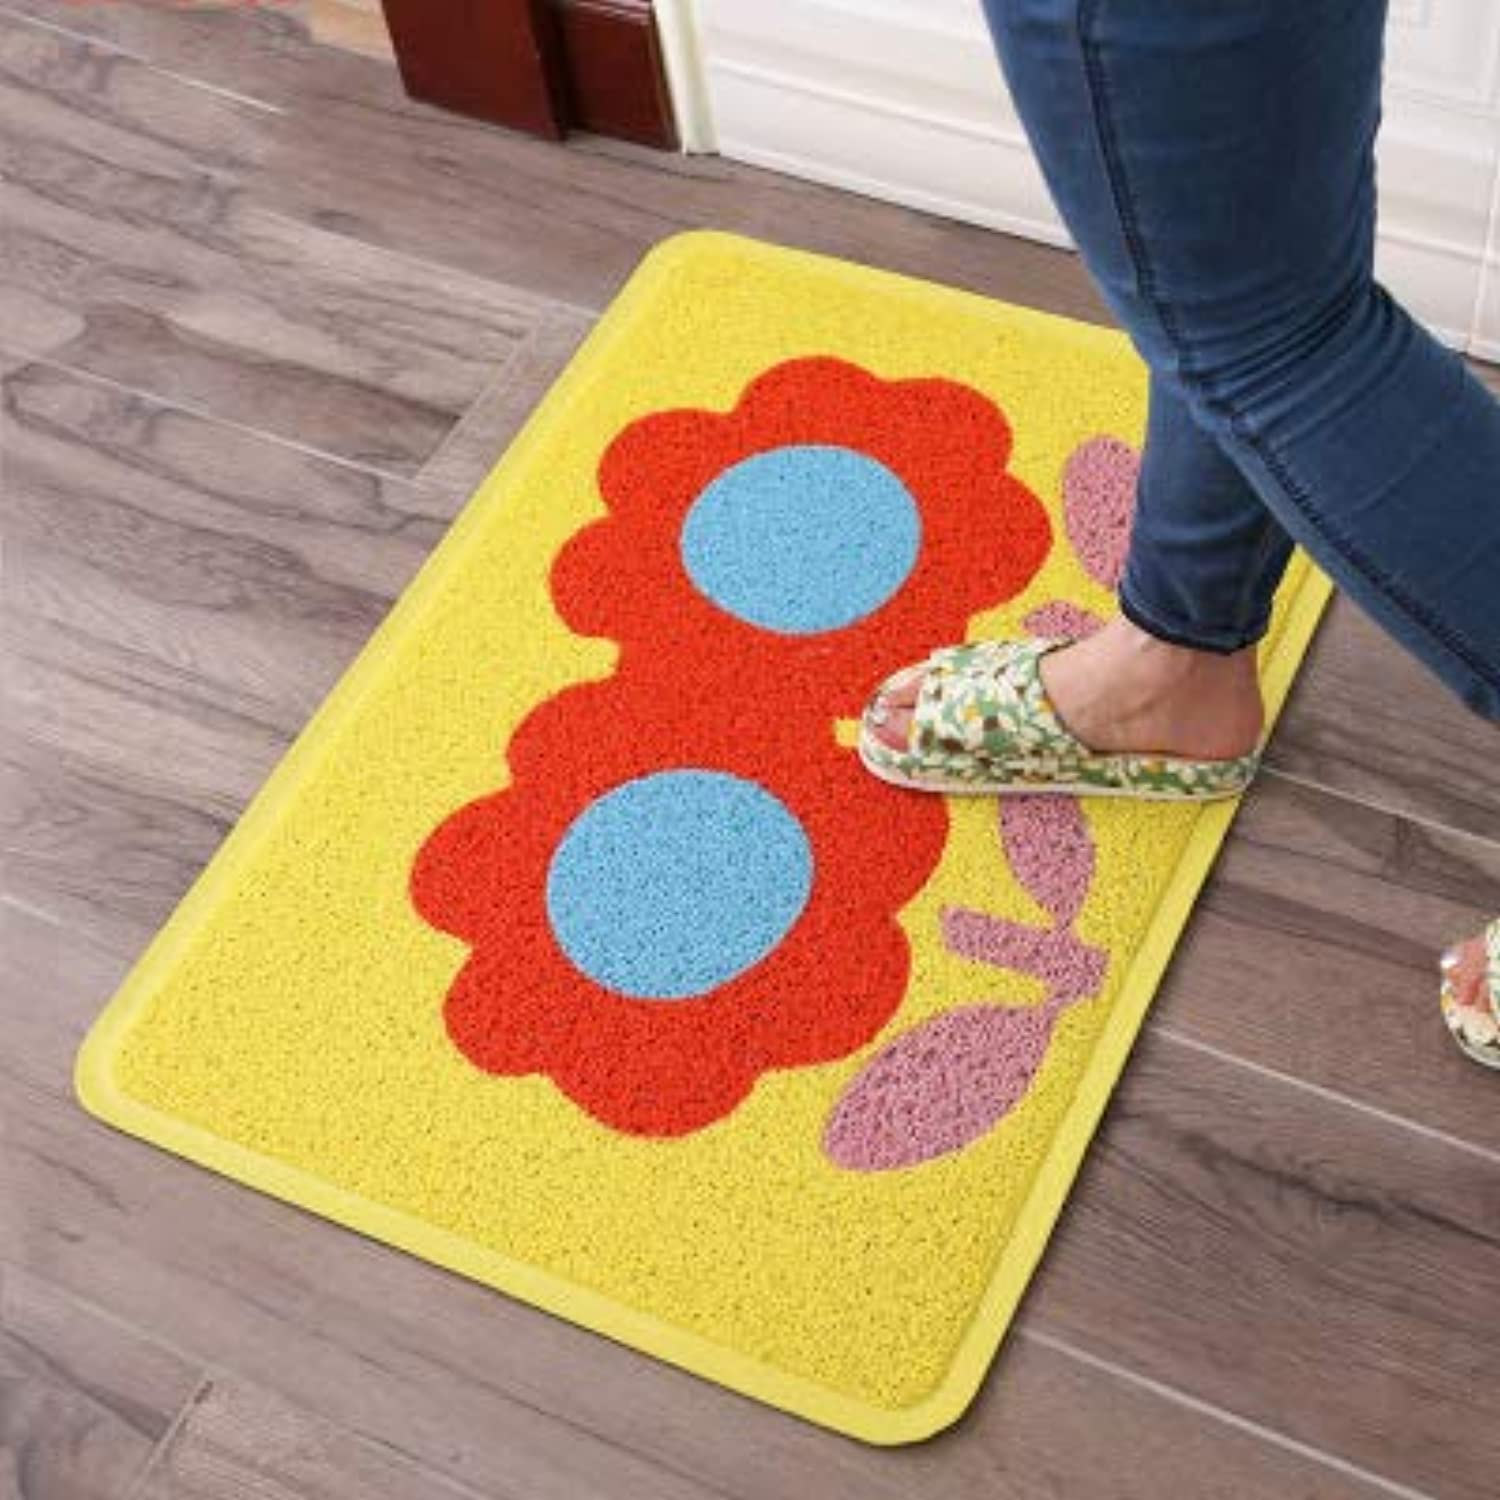 Door mat,Entrance Door mats Carpet mats Non Slip Door mat Durable Easy Clean Front Door mat-Yellow 58x82cm(23inchx32inch)